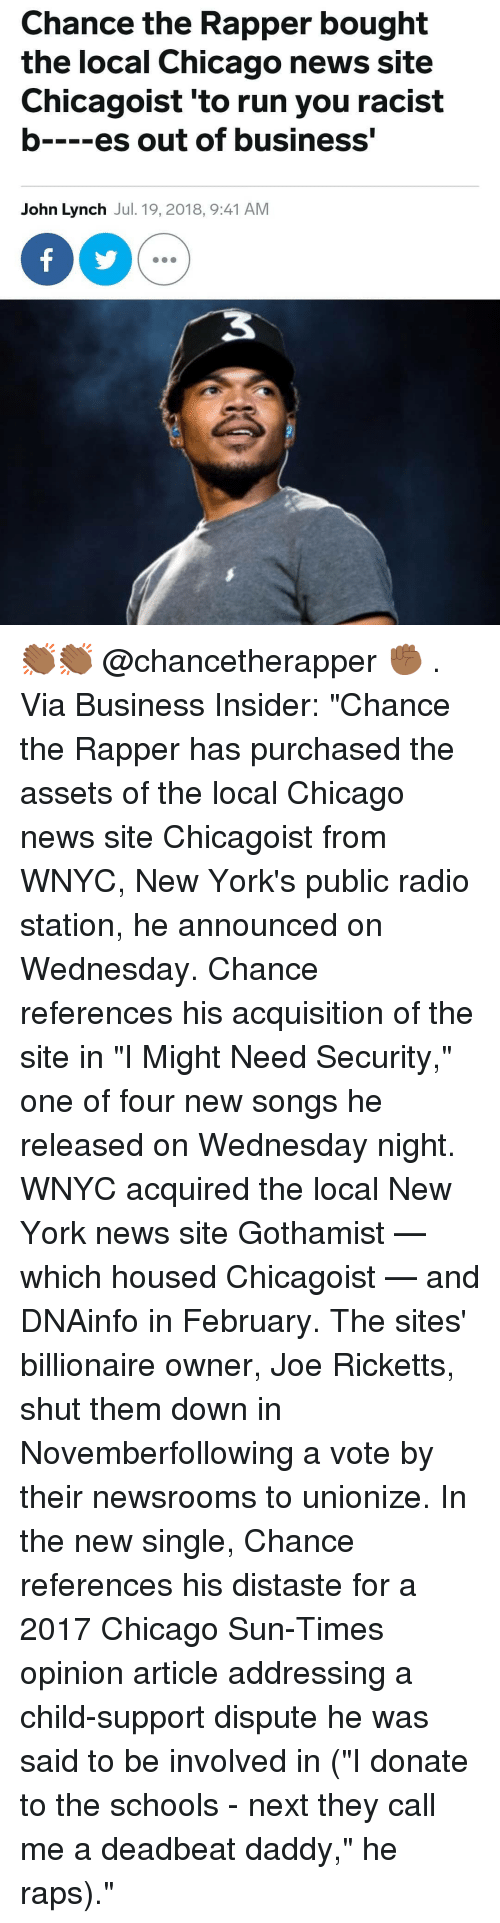 "Chance the Rapper, Chicago, and Child Support: Chance the Rapper bought  the local Chicago news site  Chicagoist 'to run you racist  b es out of business'  John Lynch Jul. 19, 2018, 9:41 AM 👏🏾👏🏾 @chancetherapper ✊🏾 . Via Business Insider: ""Chance the Rapper has purchased the assets of the local Chicago news site Chicagoist from WNYC, New York's public radio station, he announced on Wednesday. Chance references his acquisition of the site in ""I Might Need Security,"" one of four new songs he released on Wednesday night. WNYC acquired the local New York news site Gothamist — which housed Chicagoist — and DNAinfo in February. The sites' billionaire owner, Joe Ricketts, shut them down in Novemberfollowing a vote by their newsrooms to unionize. In the new single, Chance references his distaste for a 2017 Chicago Sun-Times opinion article addressing a child-support dispute he was said to be involved in (""I donate to the schools - next they call me a deadbeat daddy,"" he raps)."""